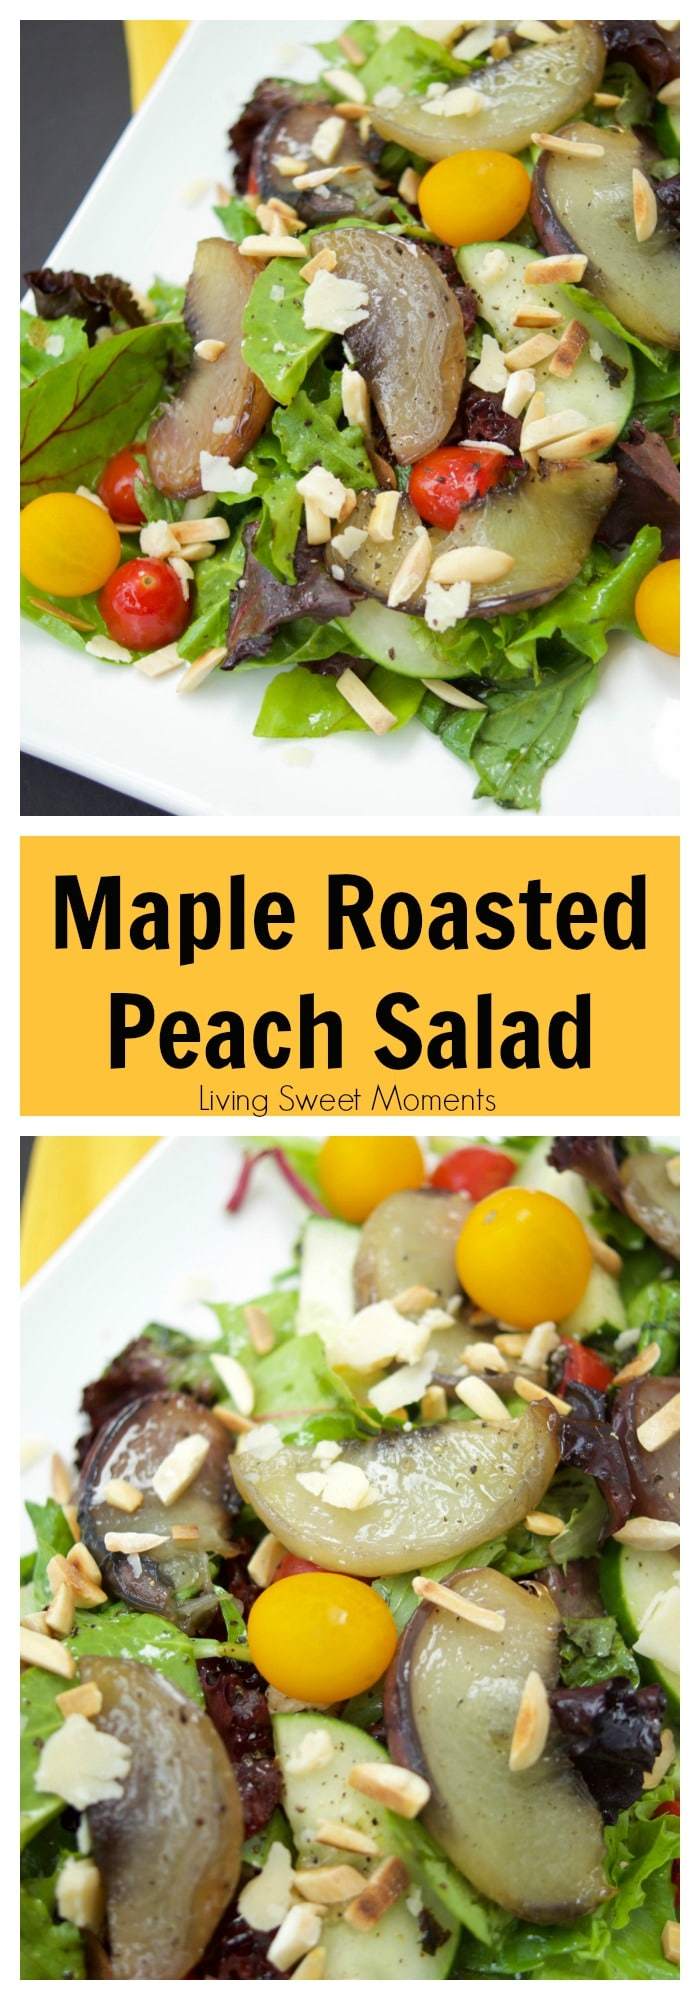 This tasty maple Roasted Peach Salad recipe is served with greens, tomatoes, almonds, parmesan and almonds, then tossed with a tangy maple vinaigrette.